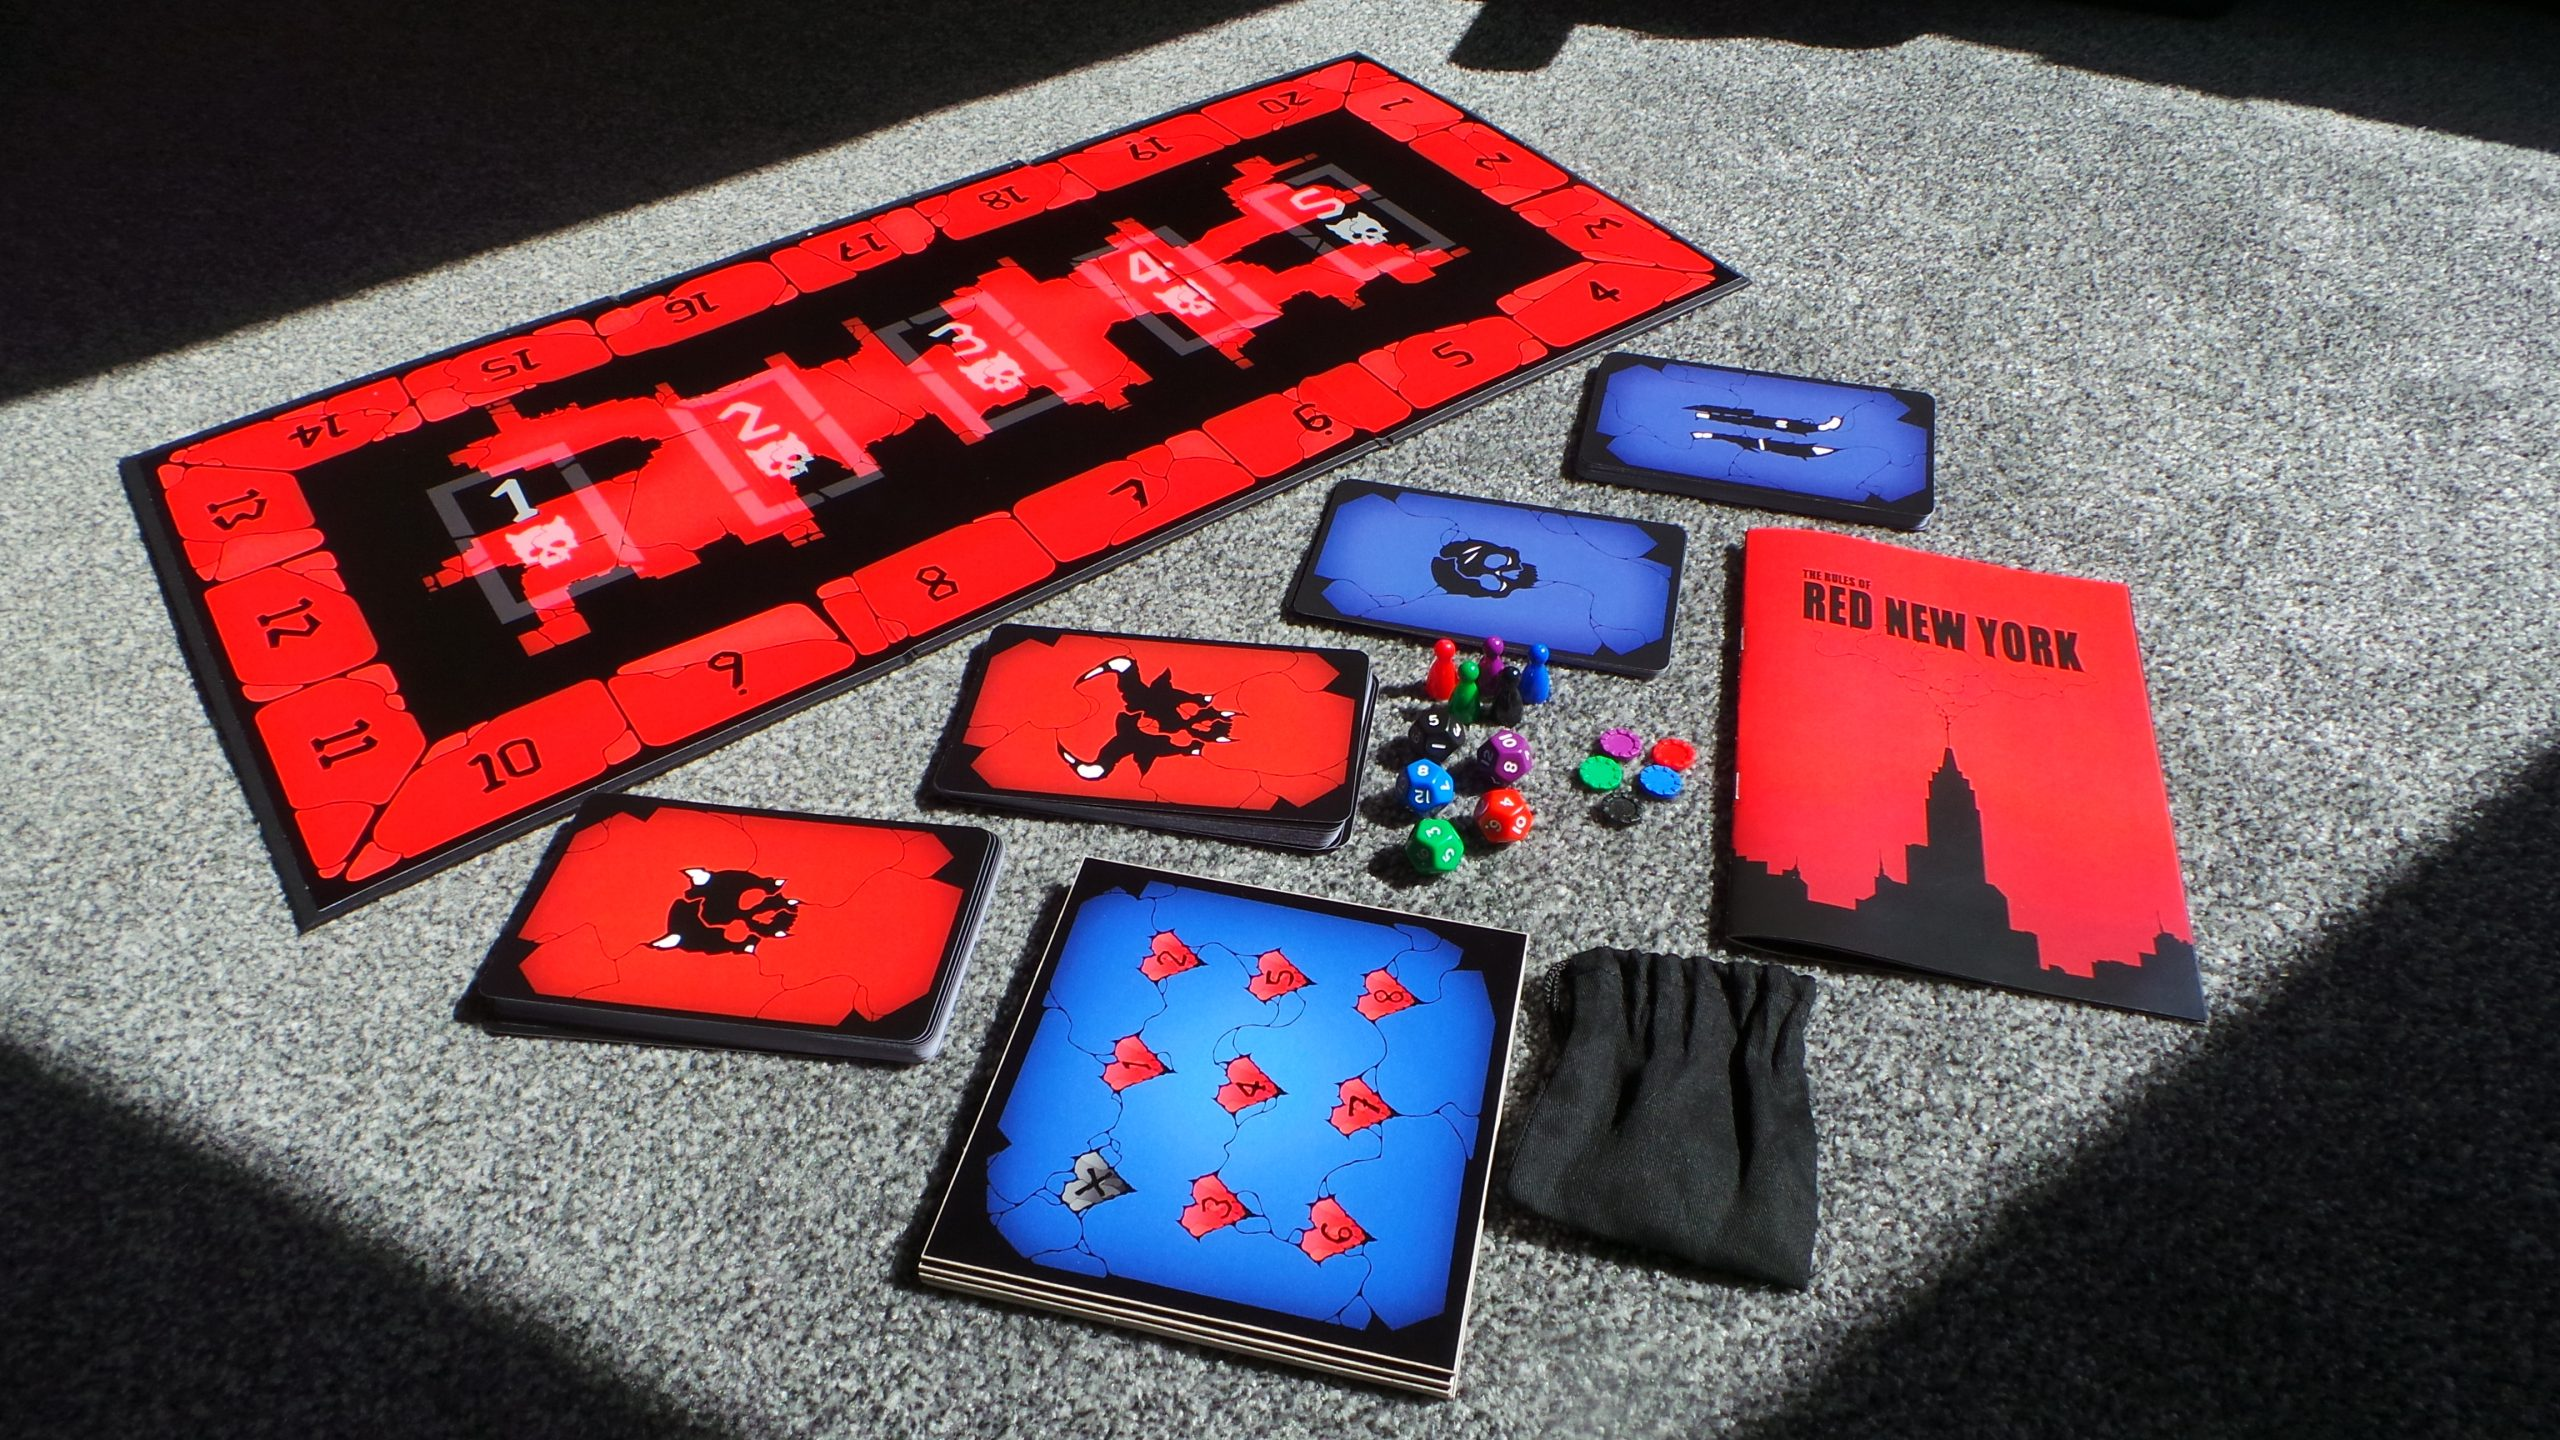 Red New York: Board Game Image